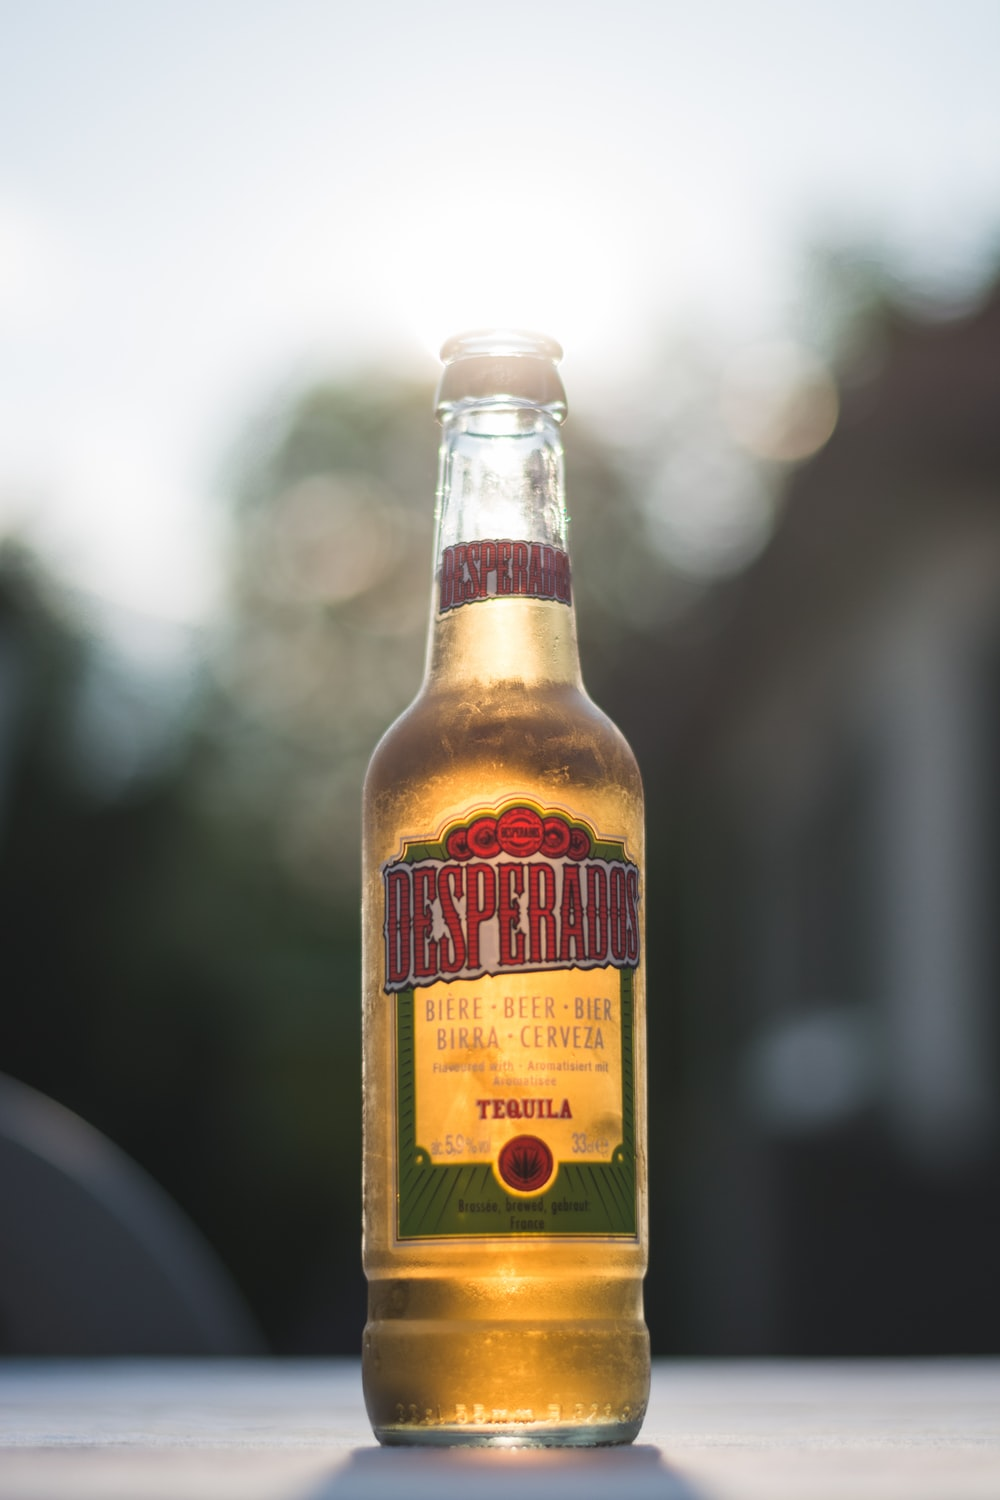 Desperados tequila bottle selective focus photography